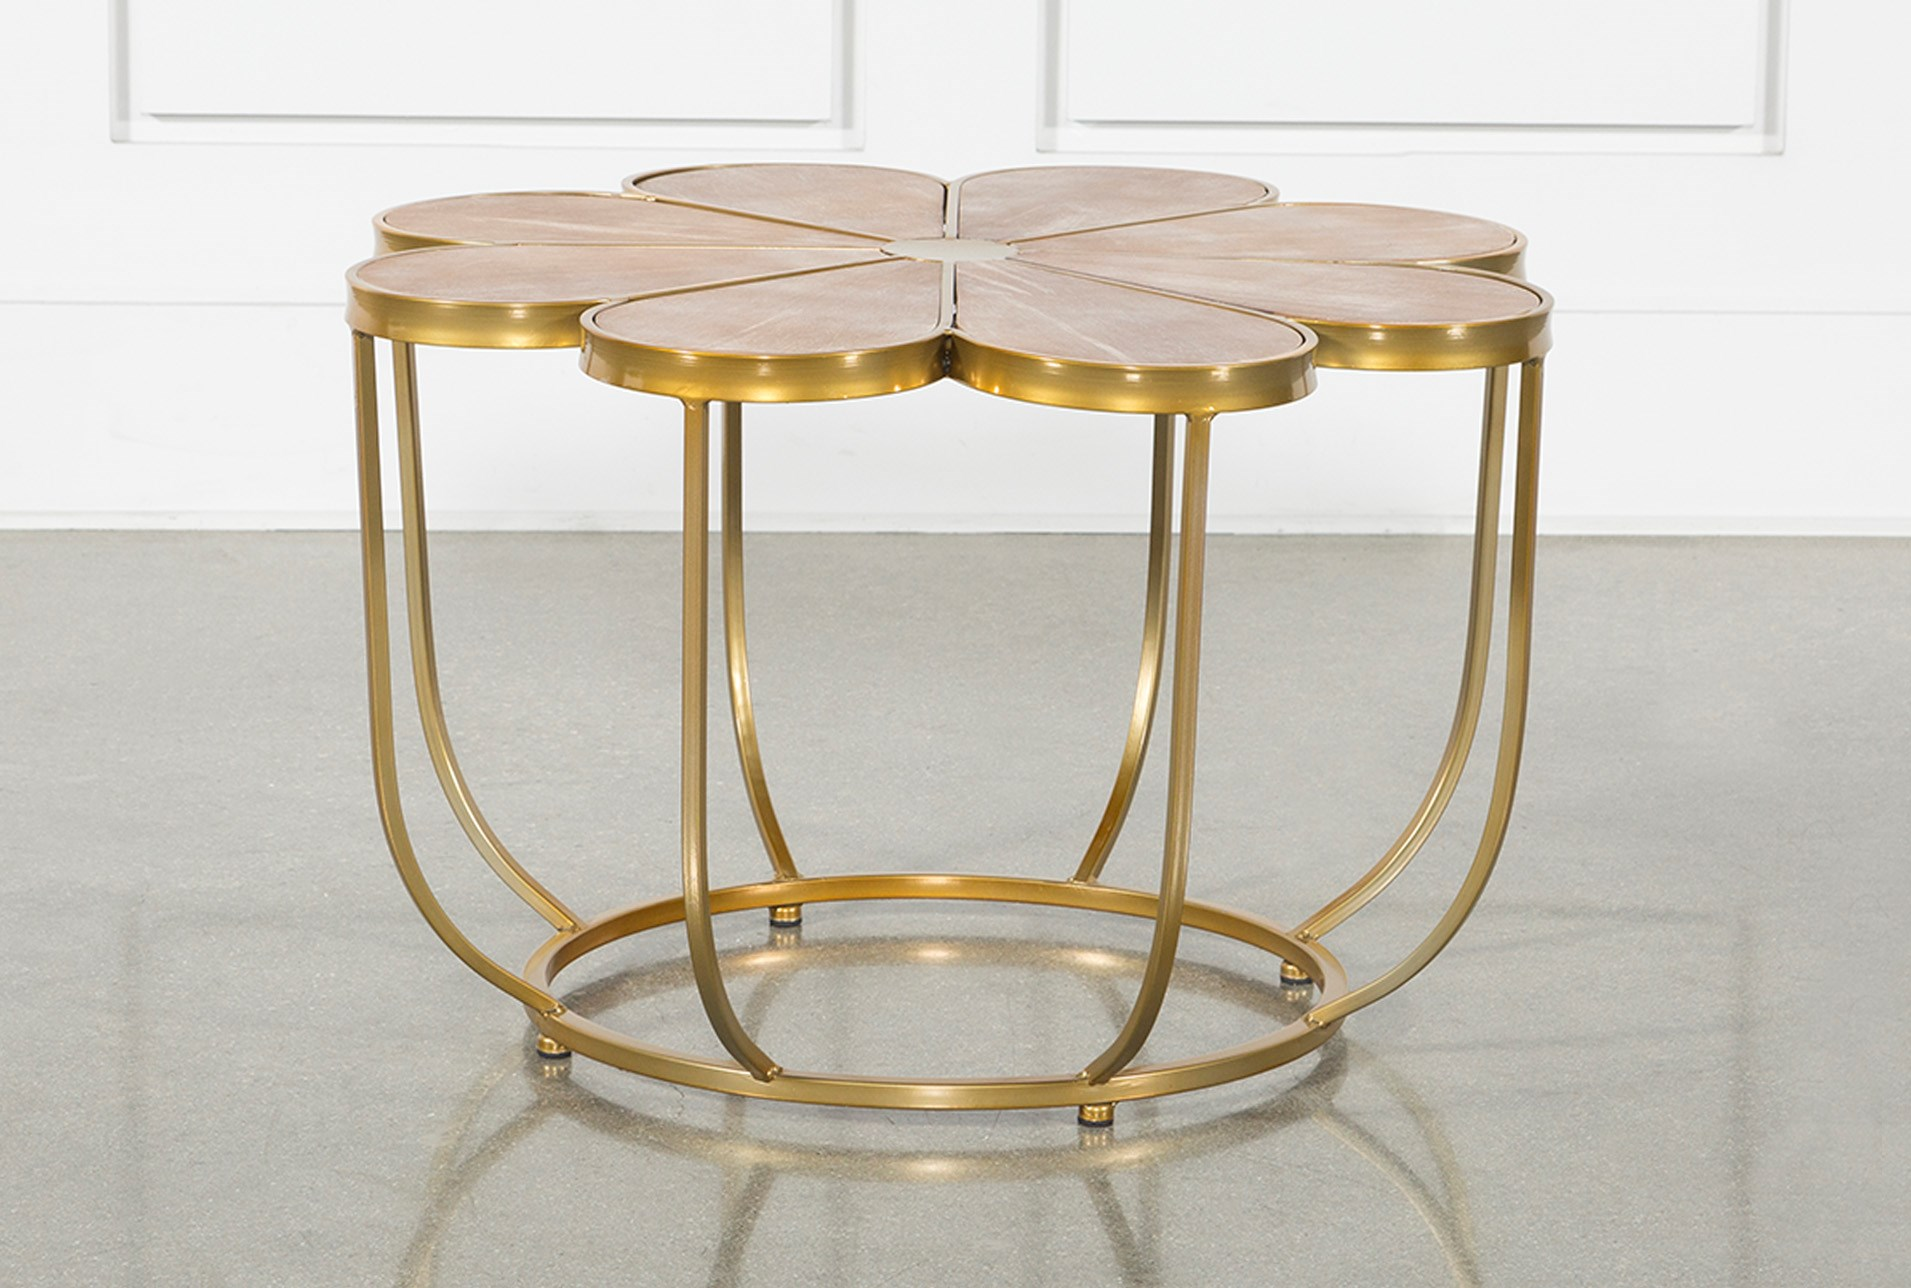 margarita accent table living spaces brown metal signature outdoor qty has been successfully your cart marble dining set unusual chairs bar iron company pink chandelier lamp navy